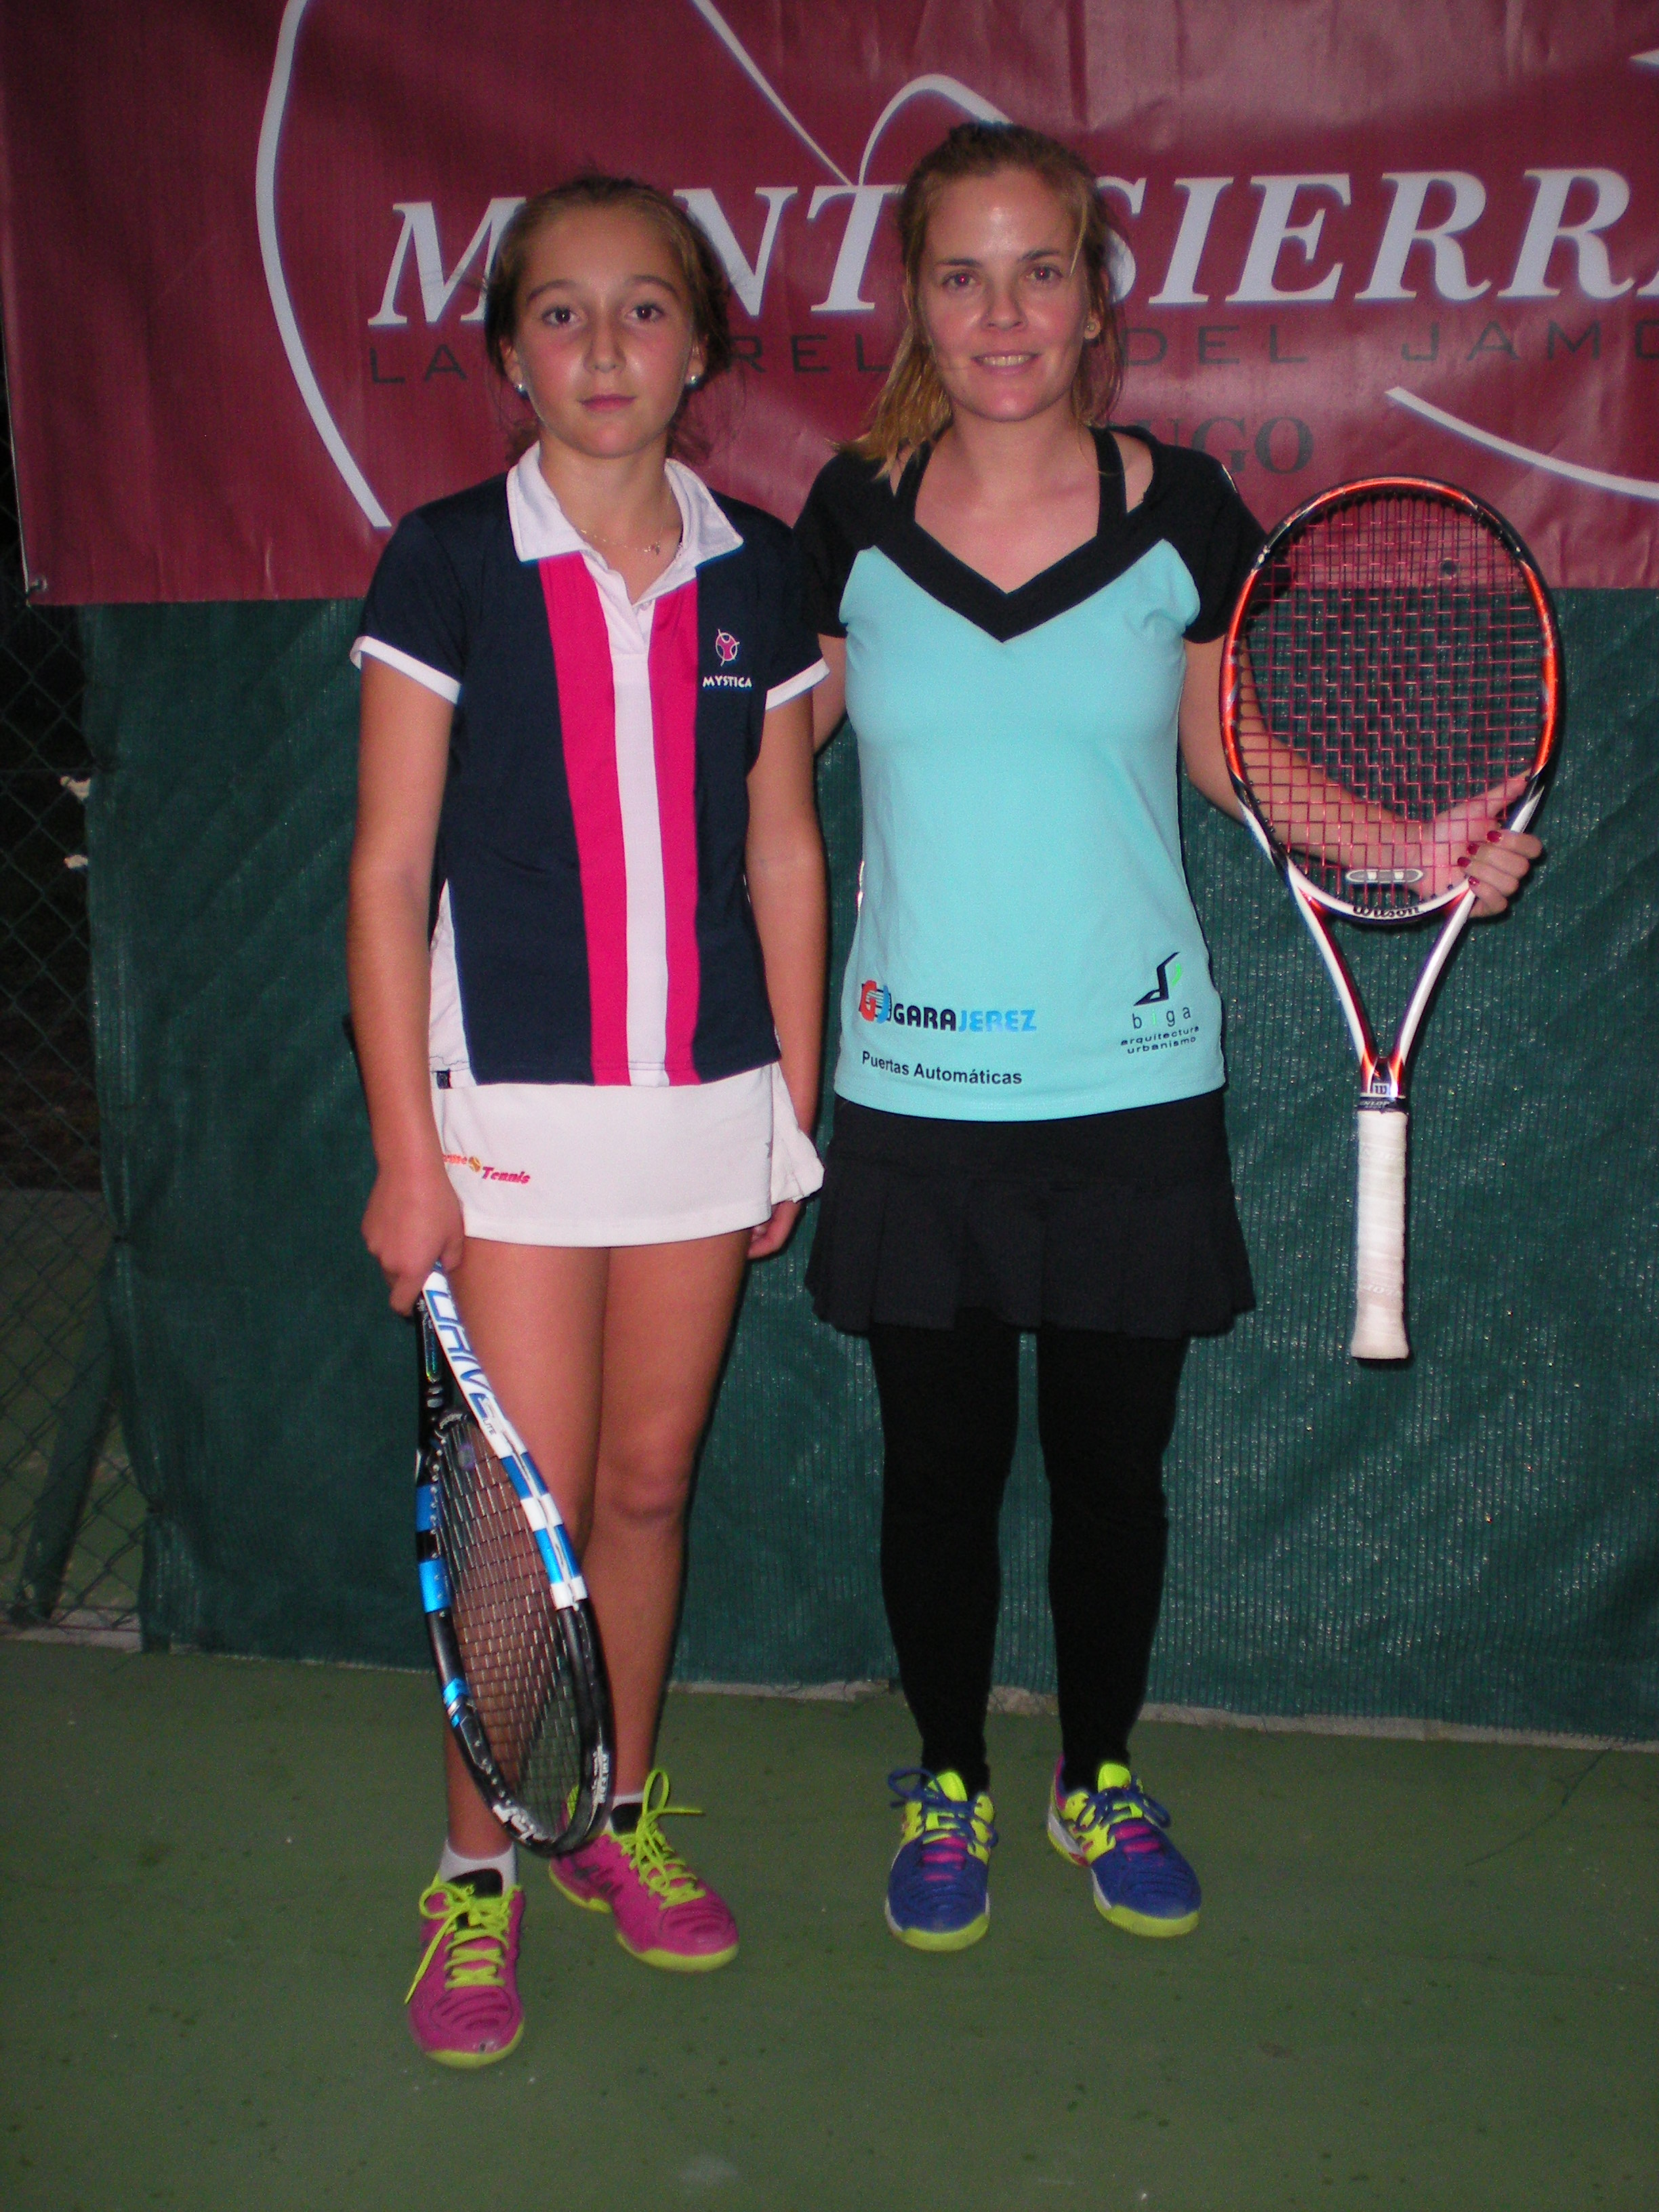 11 FINAL FEMENINA TENIS ABSOLUTO